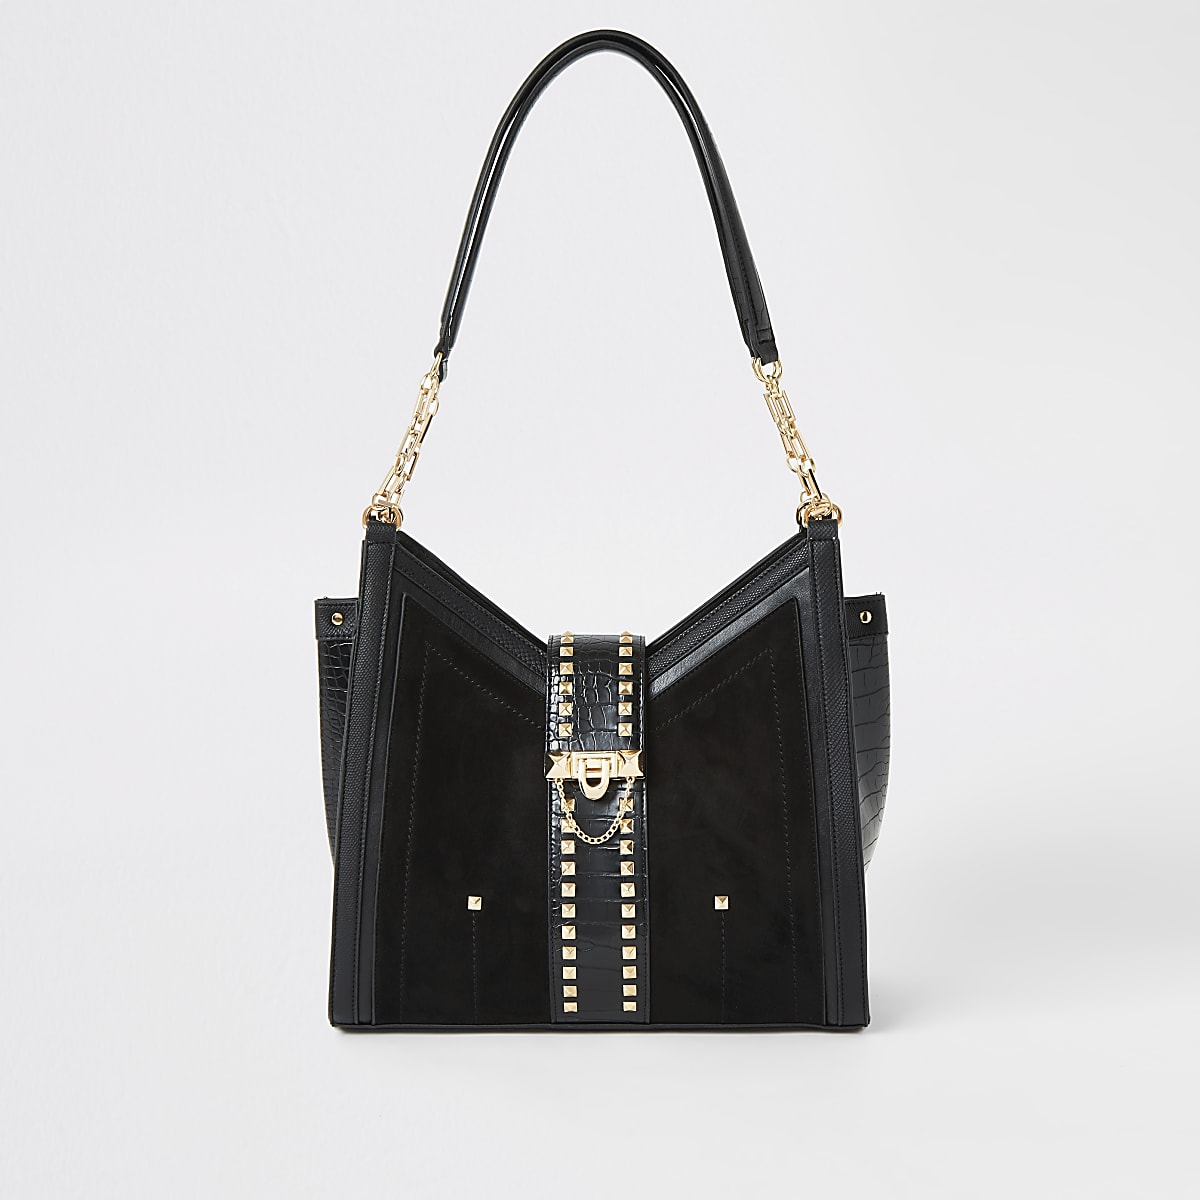 Black stud embellished slouch bag